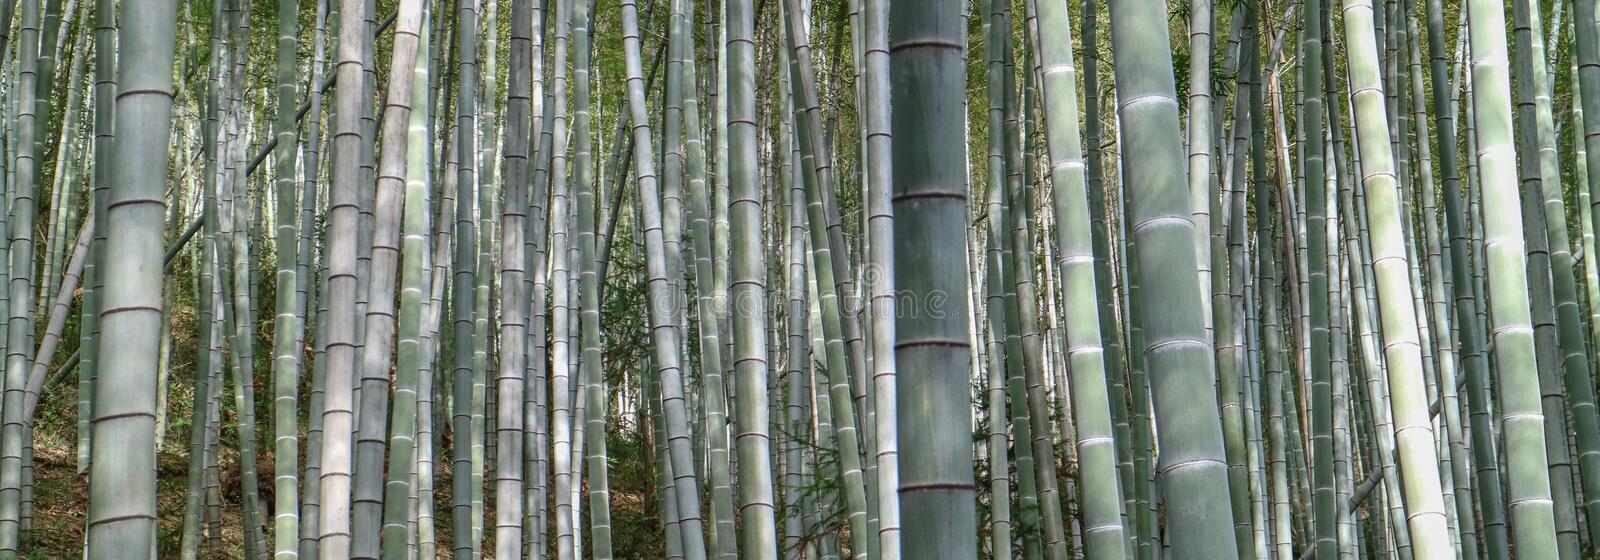 Bamboo tree. In bamboo forest royalty free stock photos